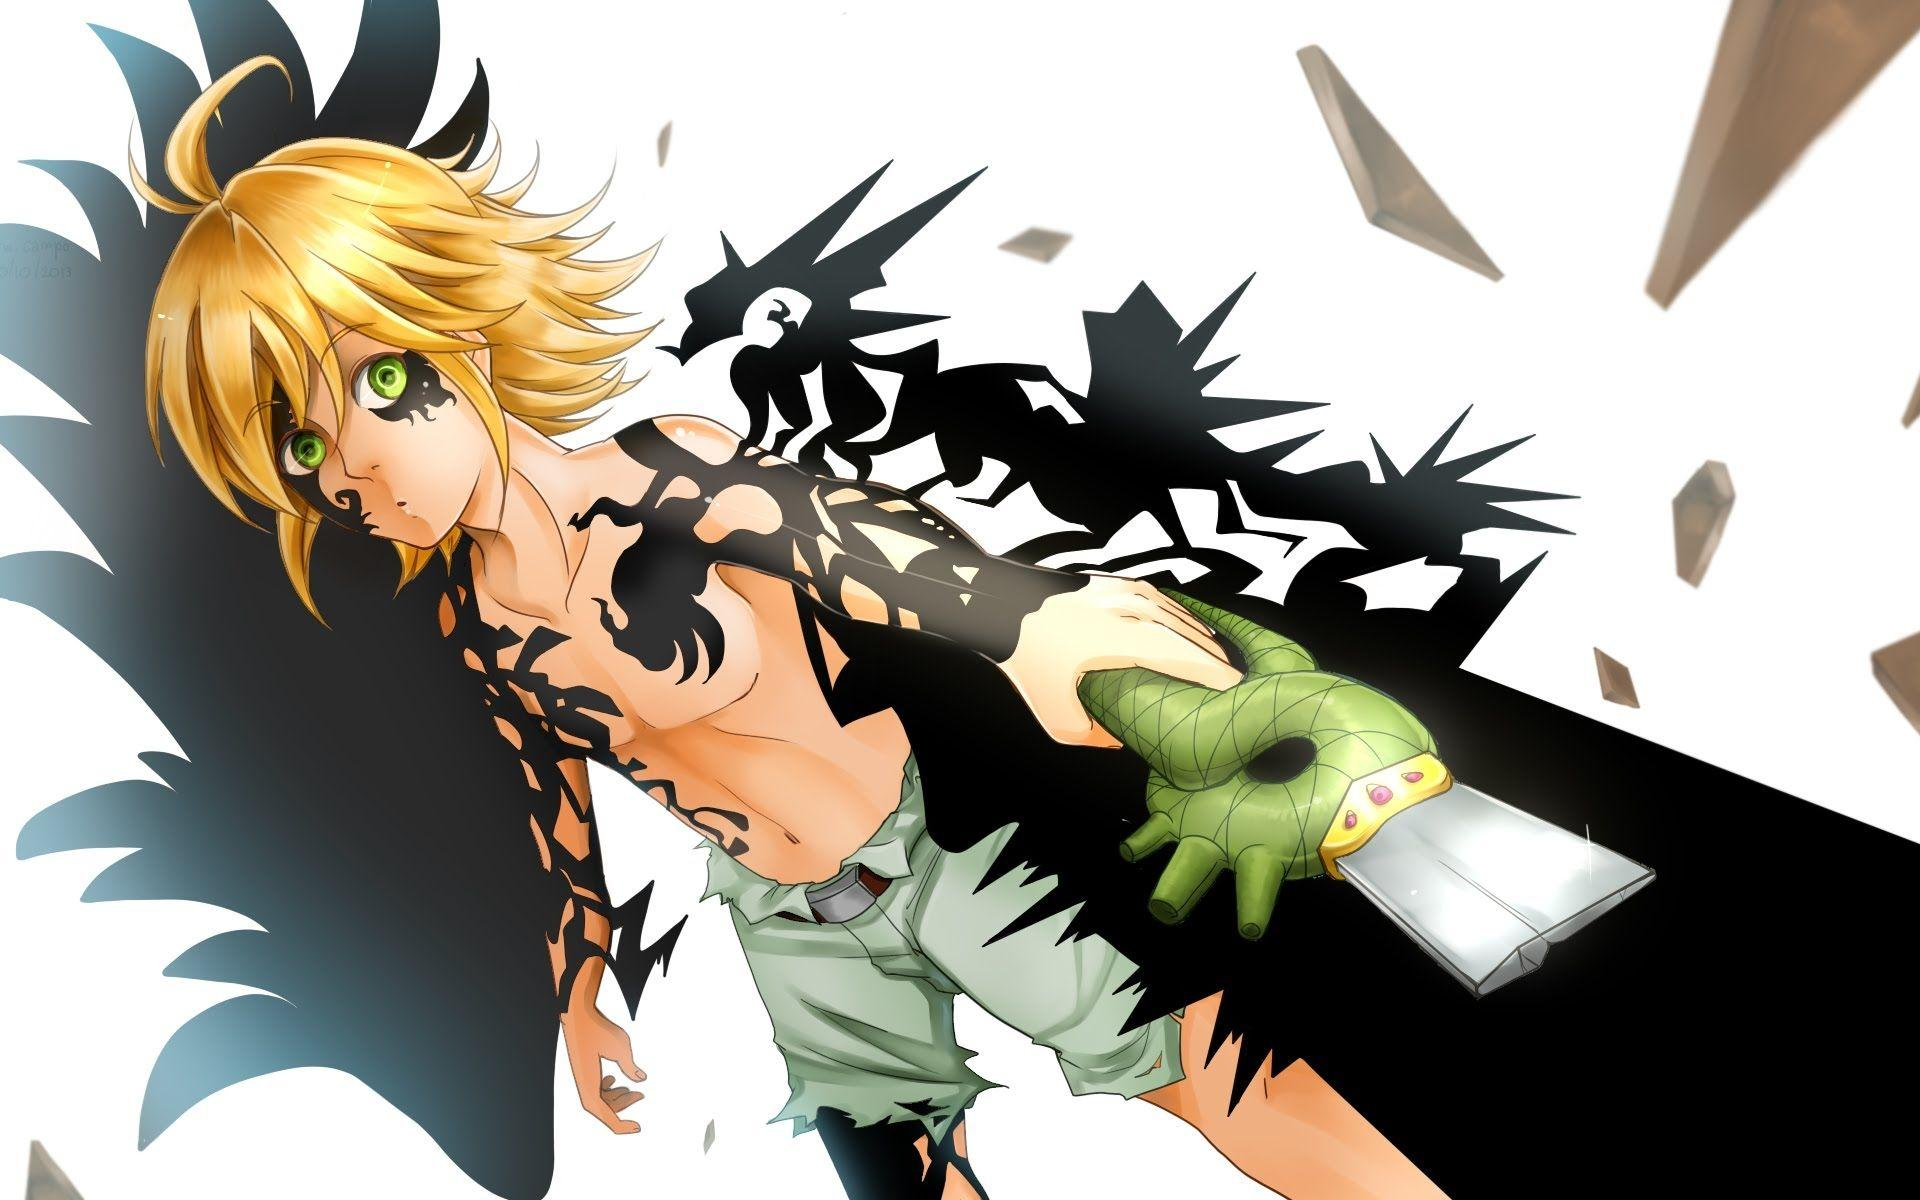 Nanatsu no taizai - The Seven Deadly Sins Wallpaper (1920x1200 ...